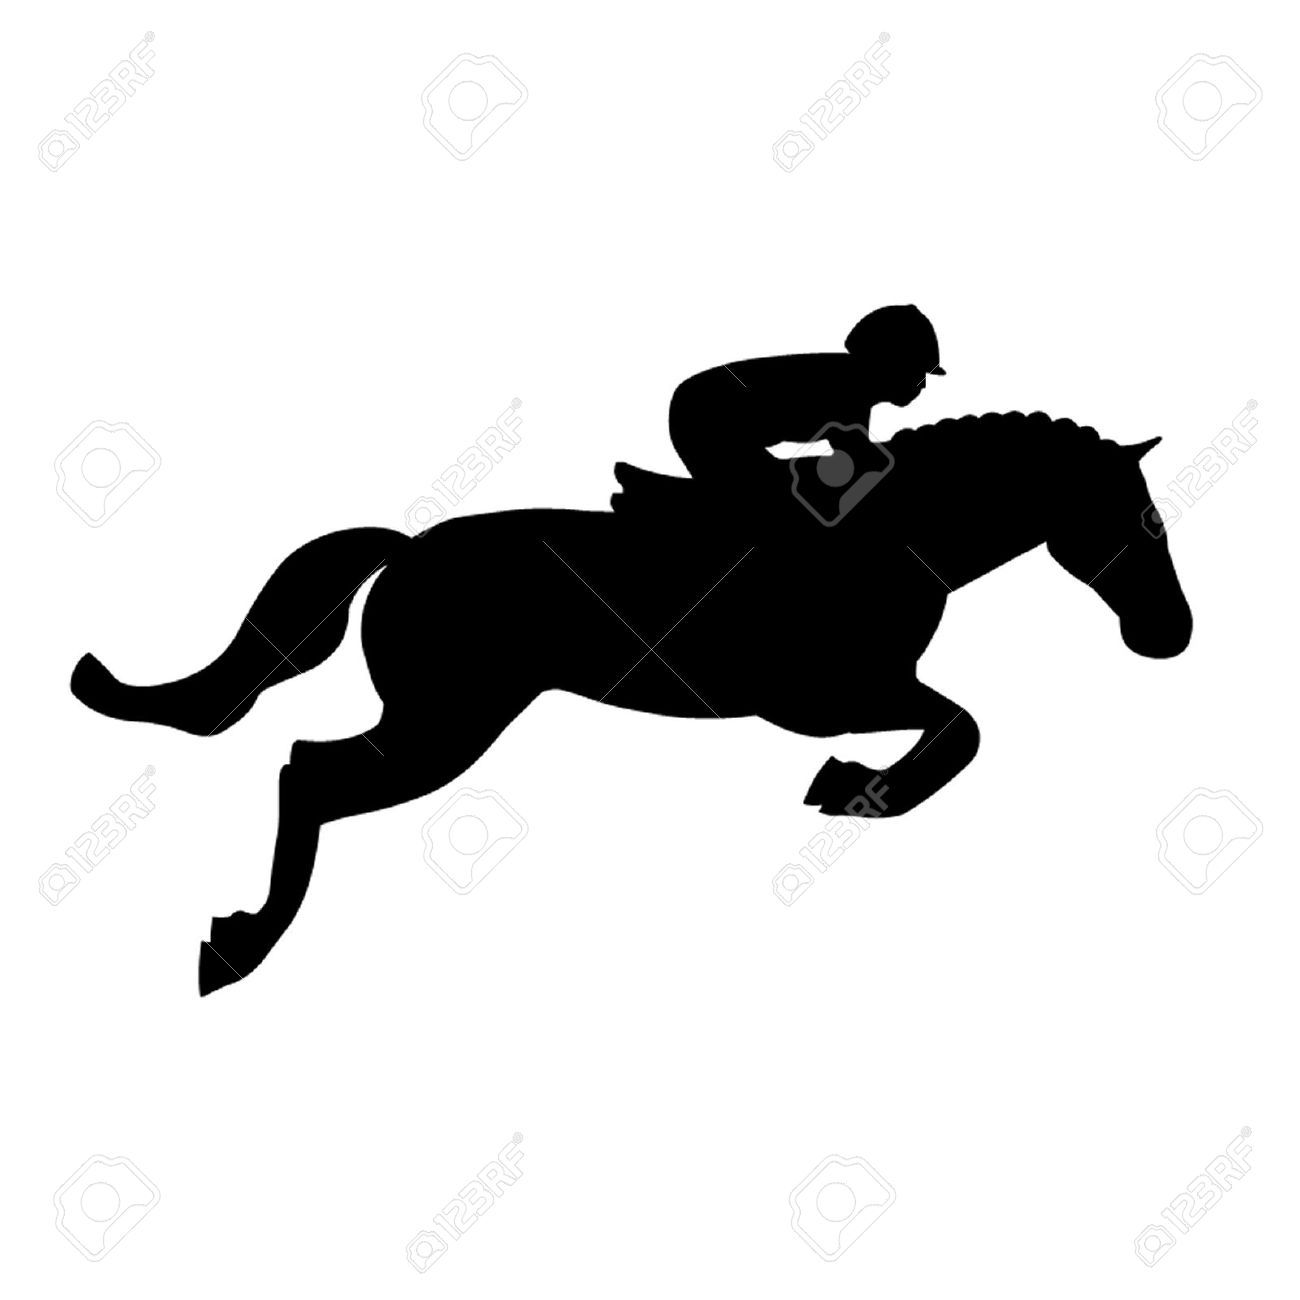 Free horse jumping clipart 4 » Clipart Portal.